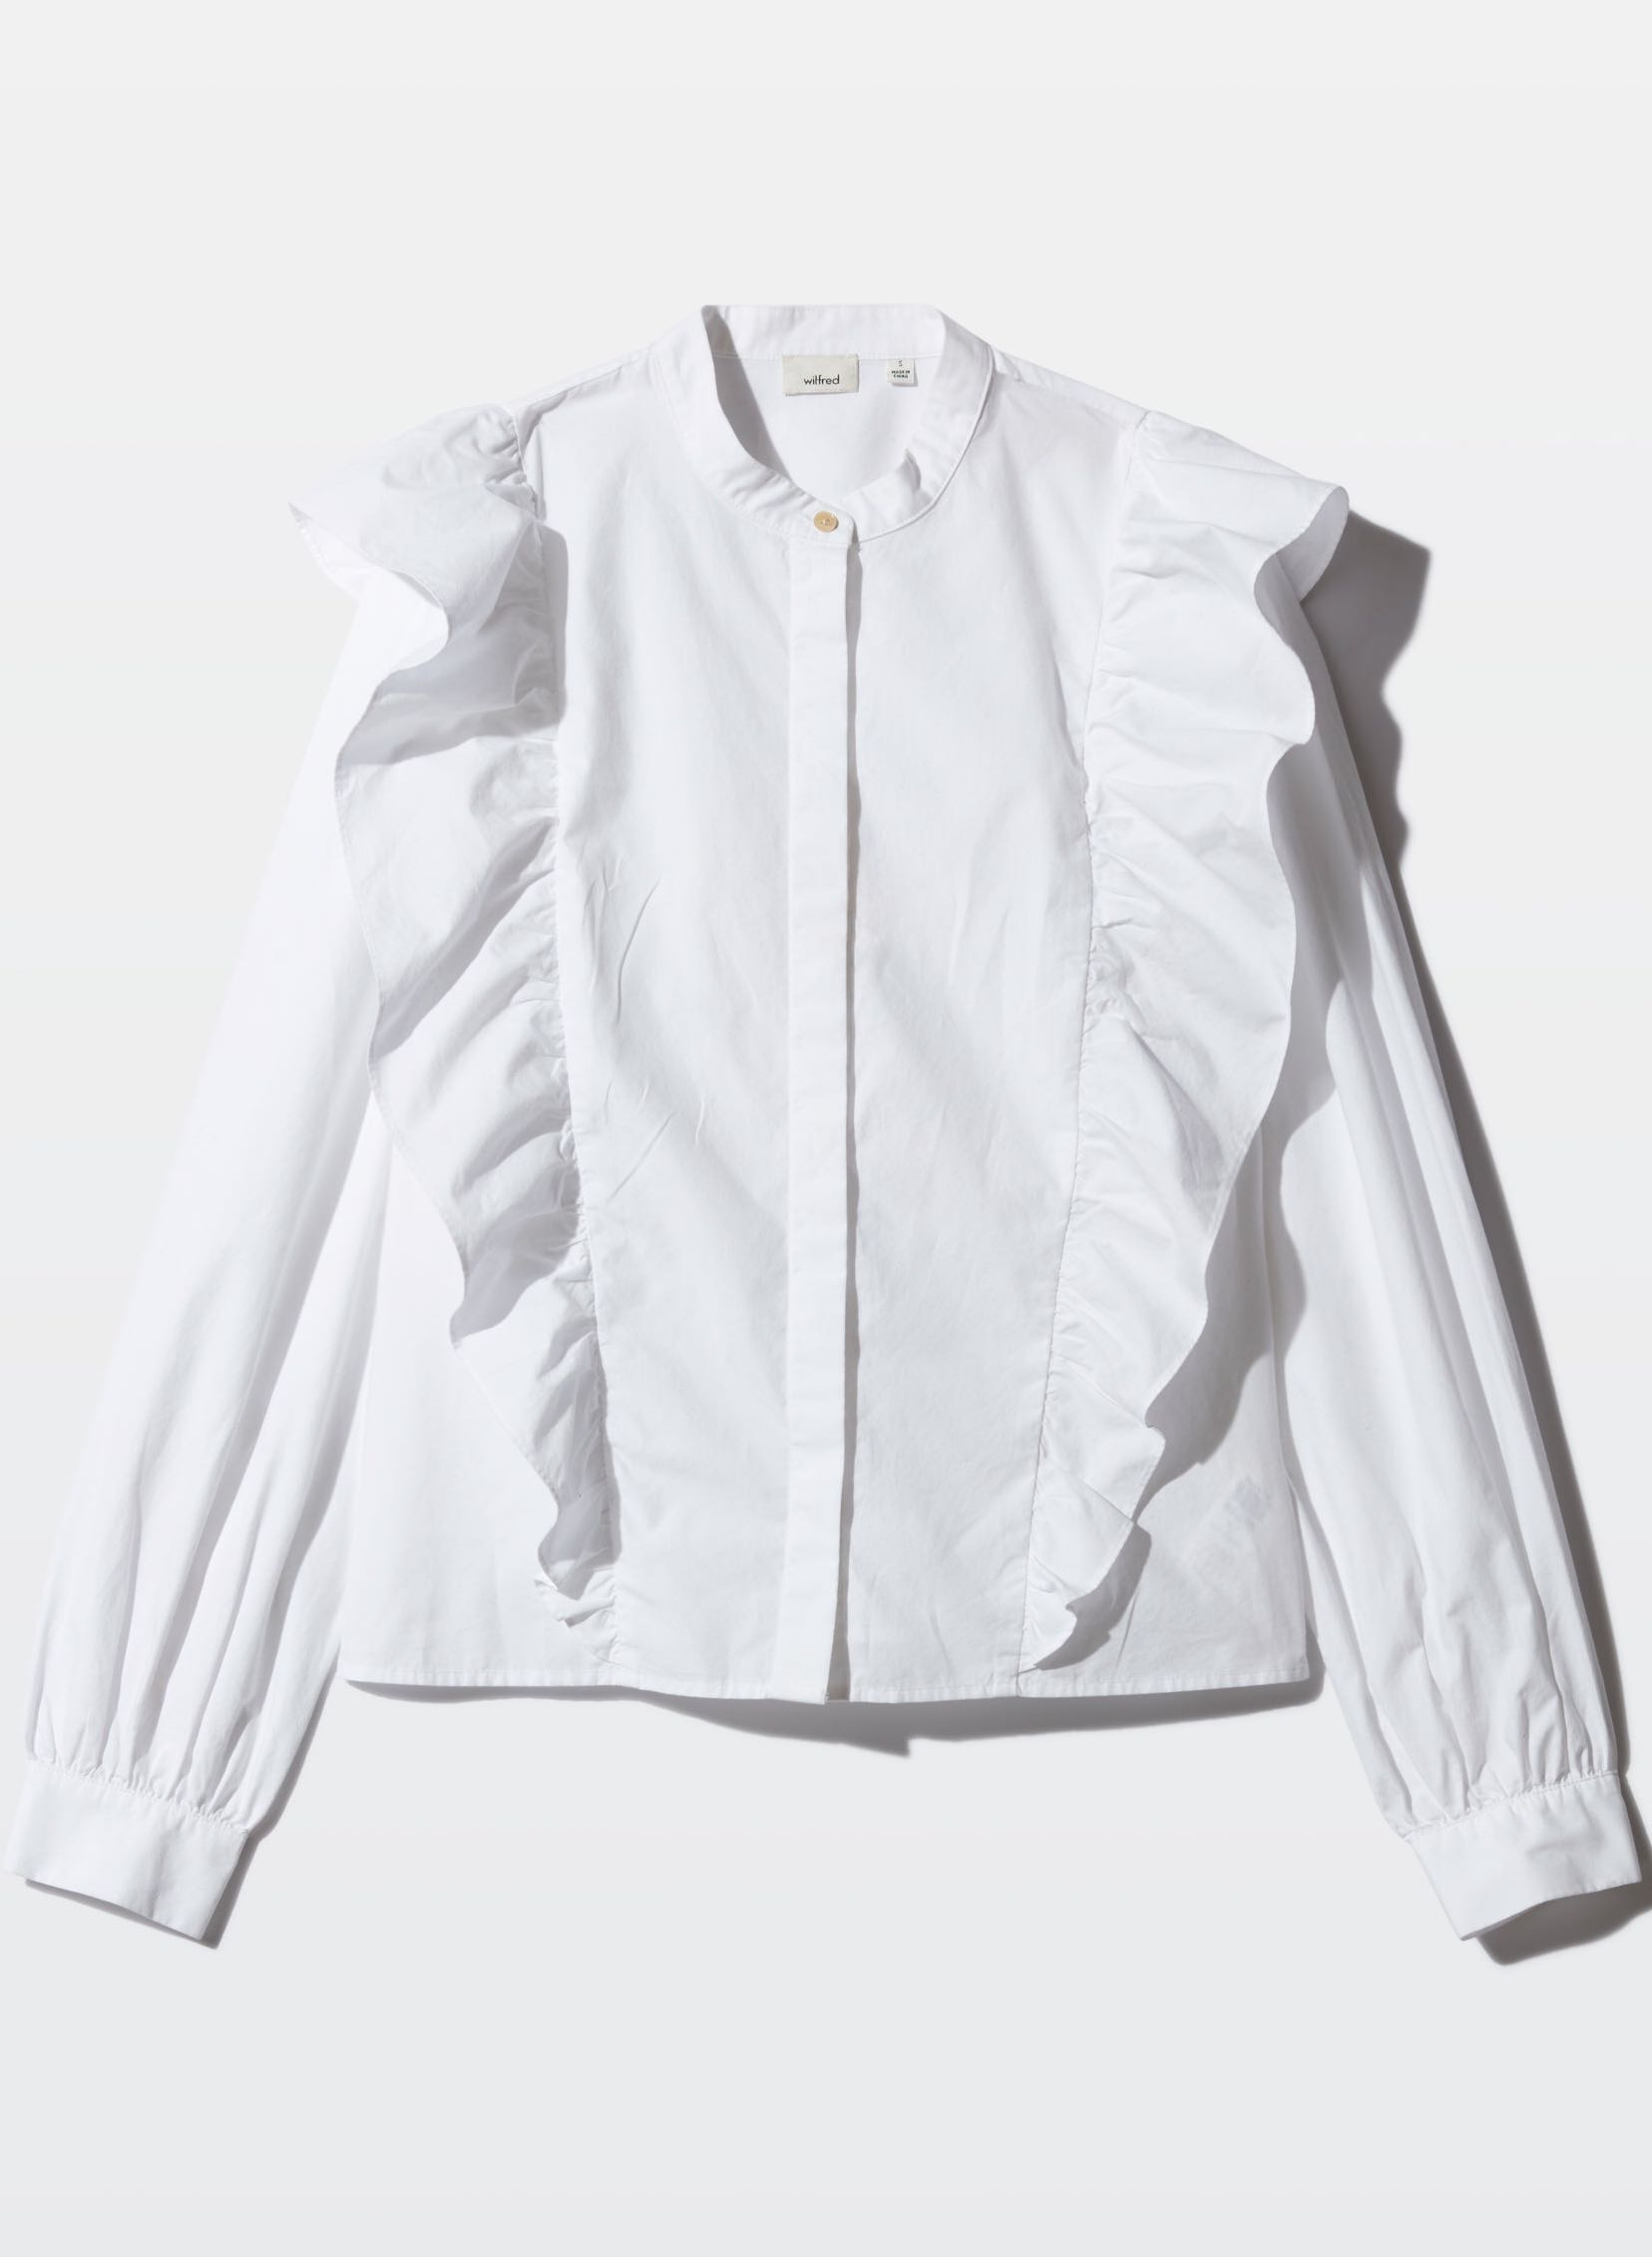 Aritzia - Wilfred Panthère blouse